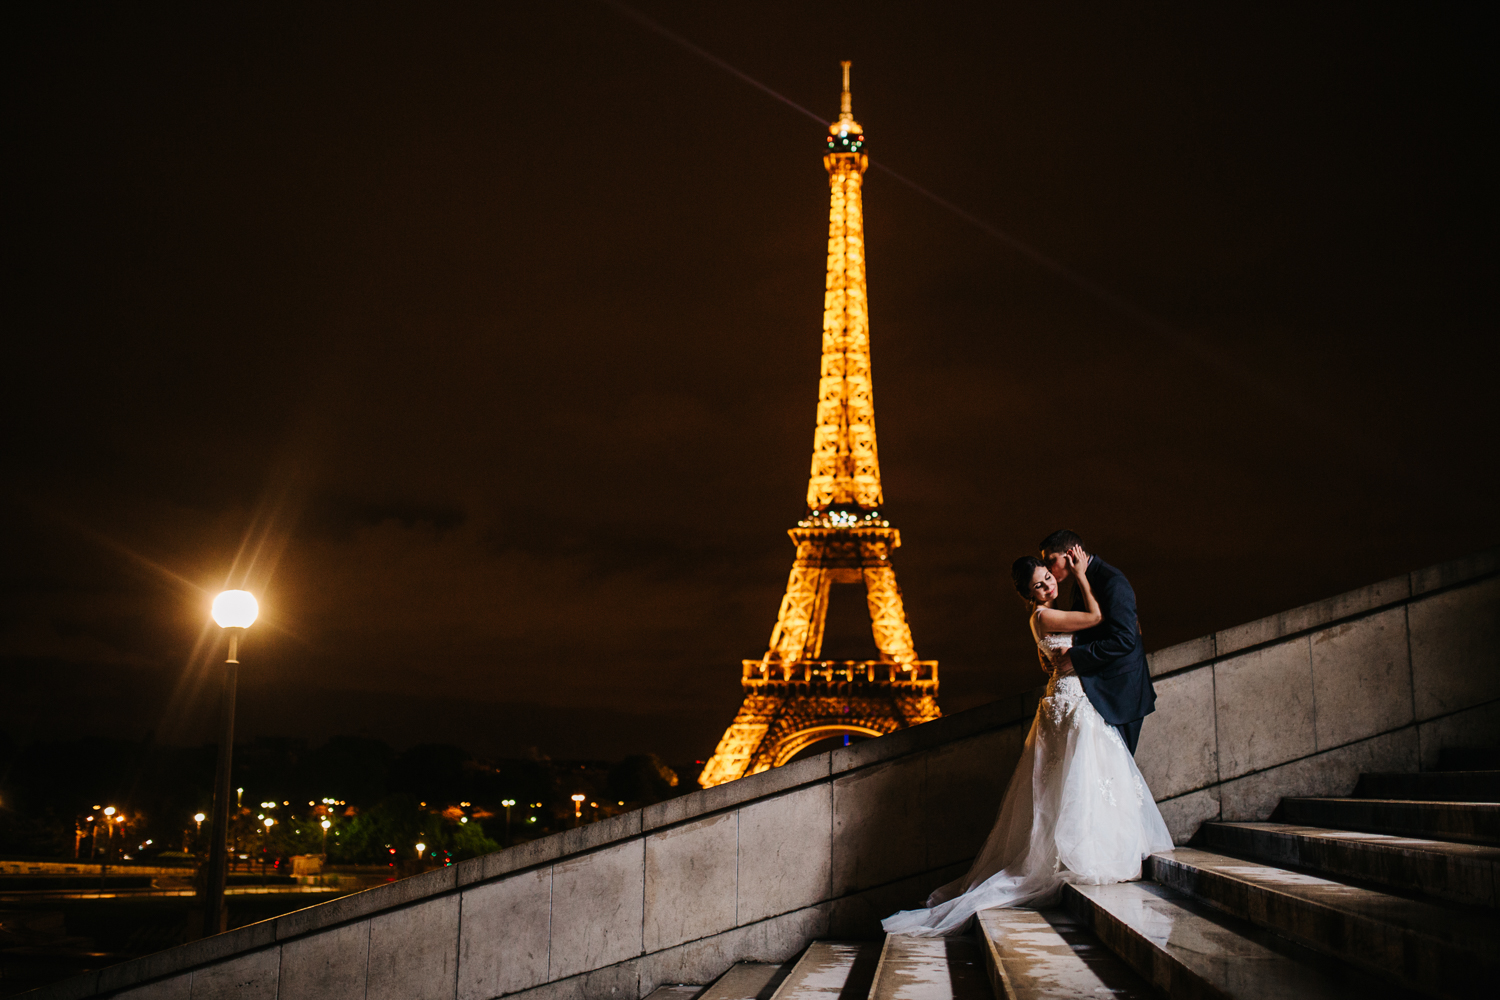 Chico-Wedding-Photography-Ranalla-Photo-Films-Wedding-Video-Wedding-Photographer-Destination-wedding-photographer-venice-wedding-paris-wedding-paris-night-eiffel-tower-17.jpg